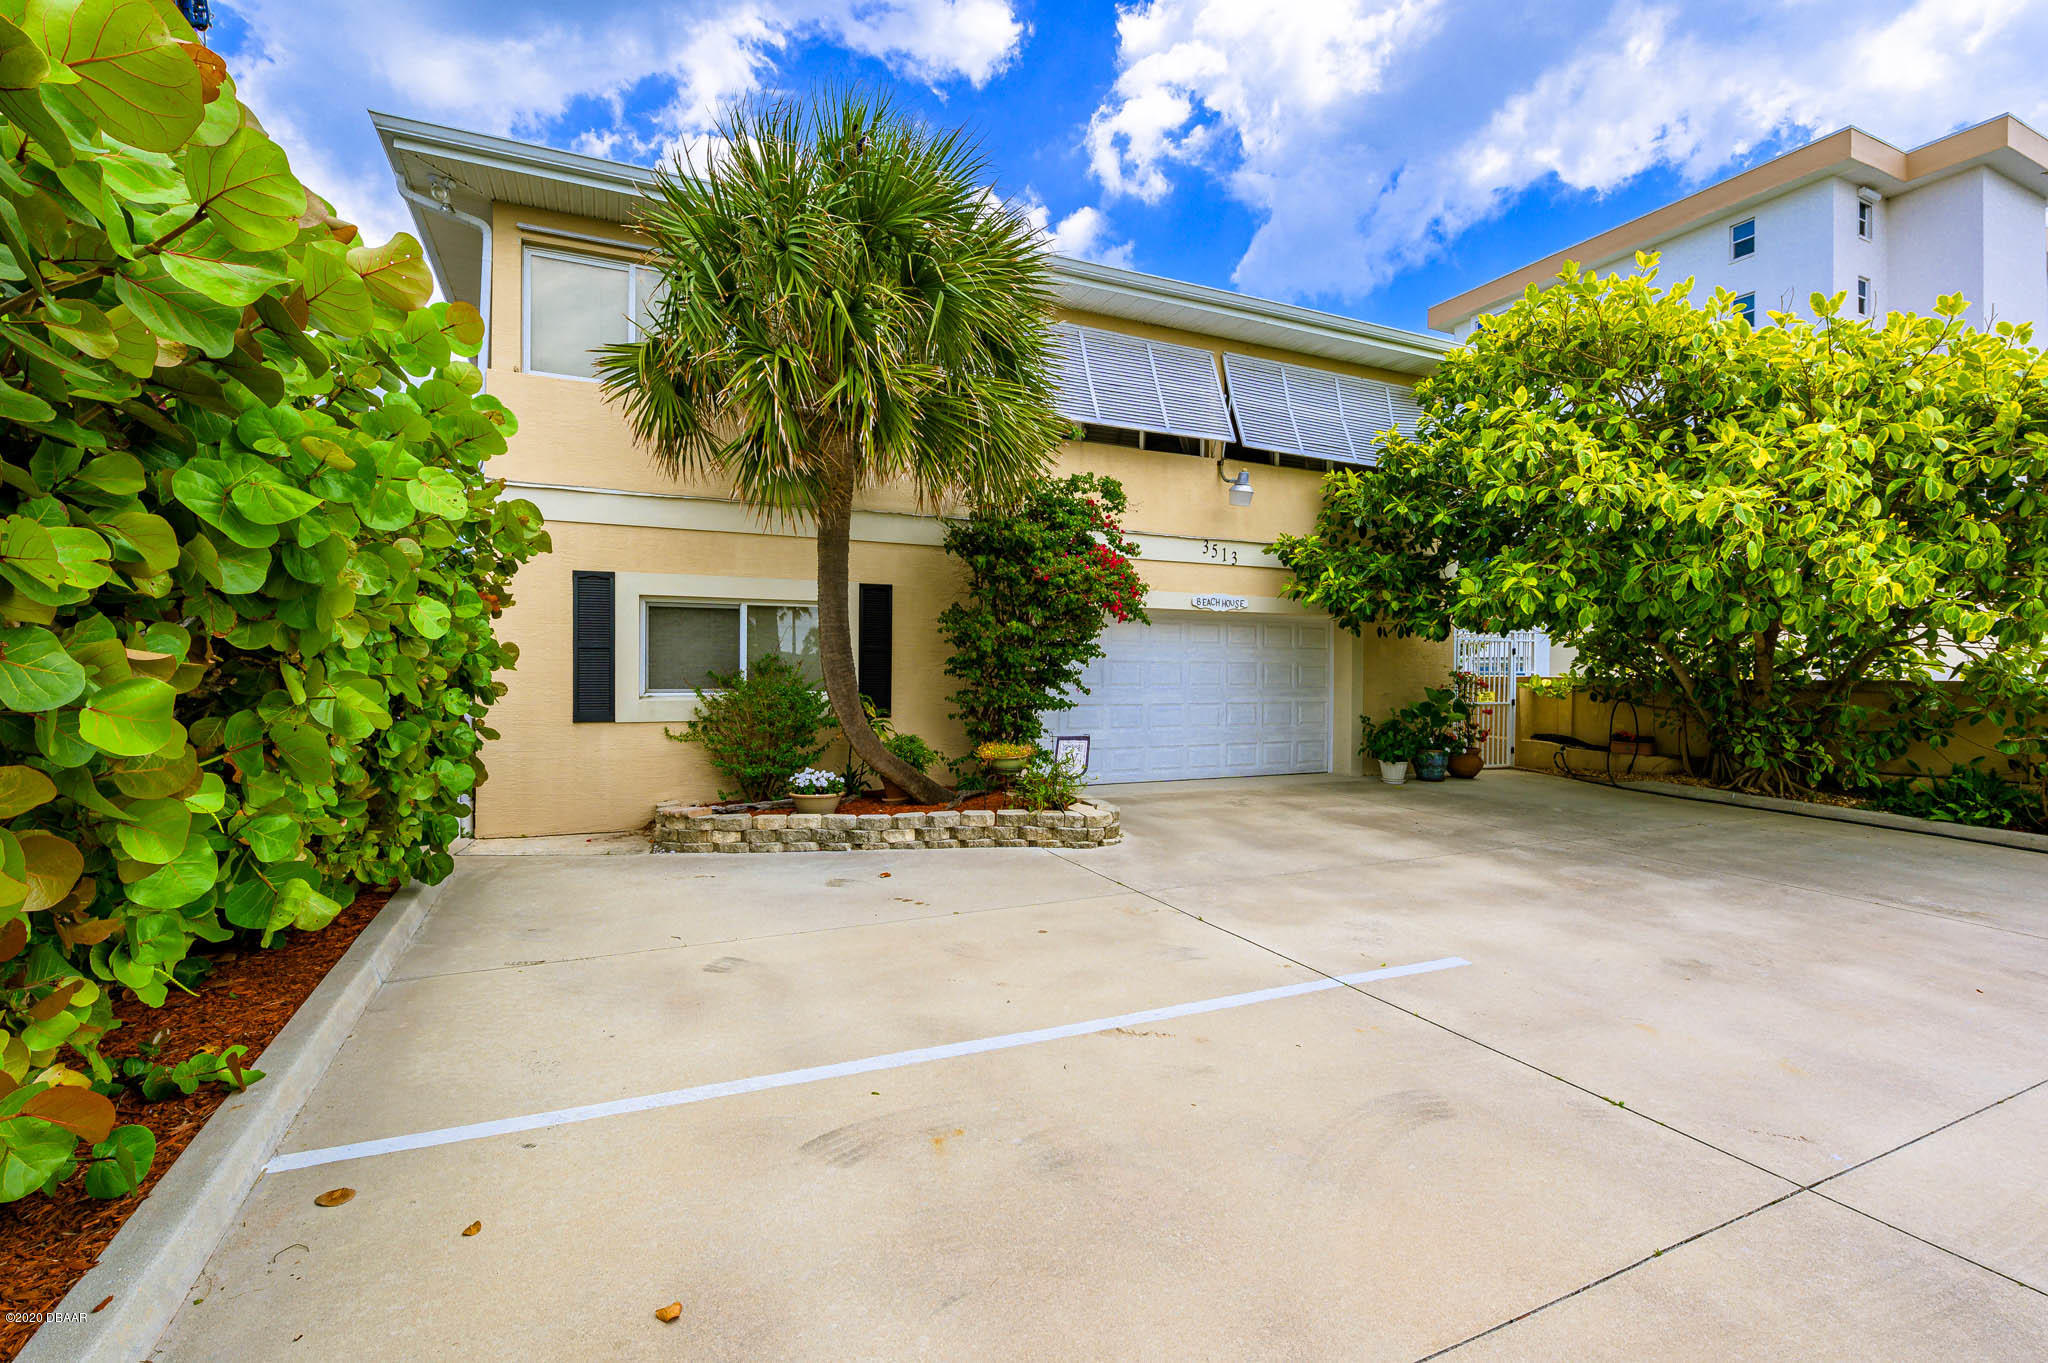 Photo of 3513 S Atlantic Avenue, Daytona Beach Shores, FL 32118